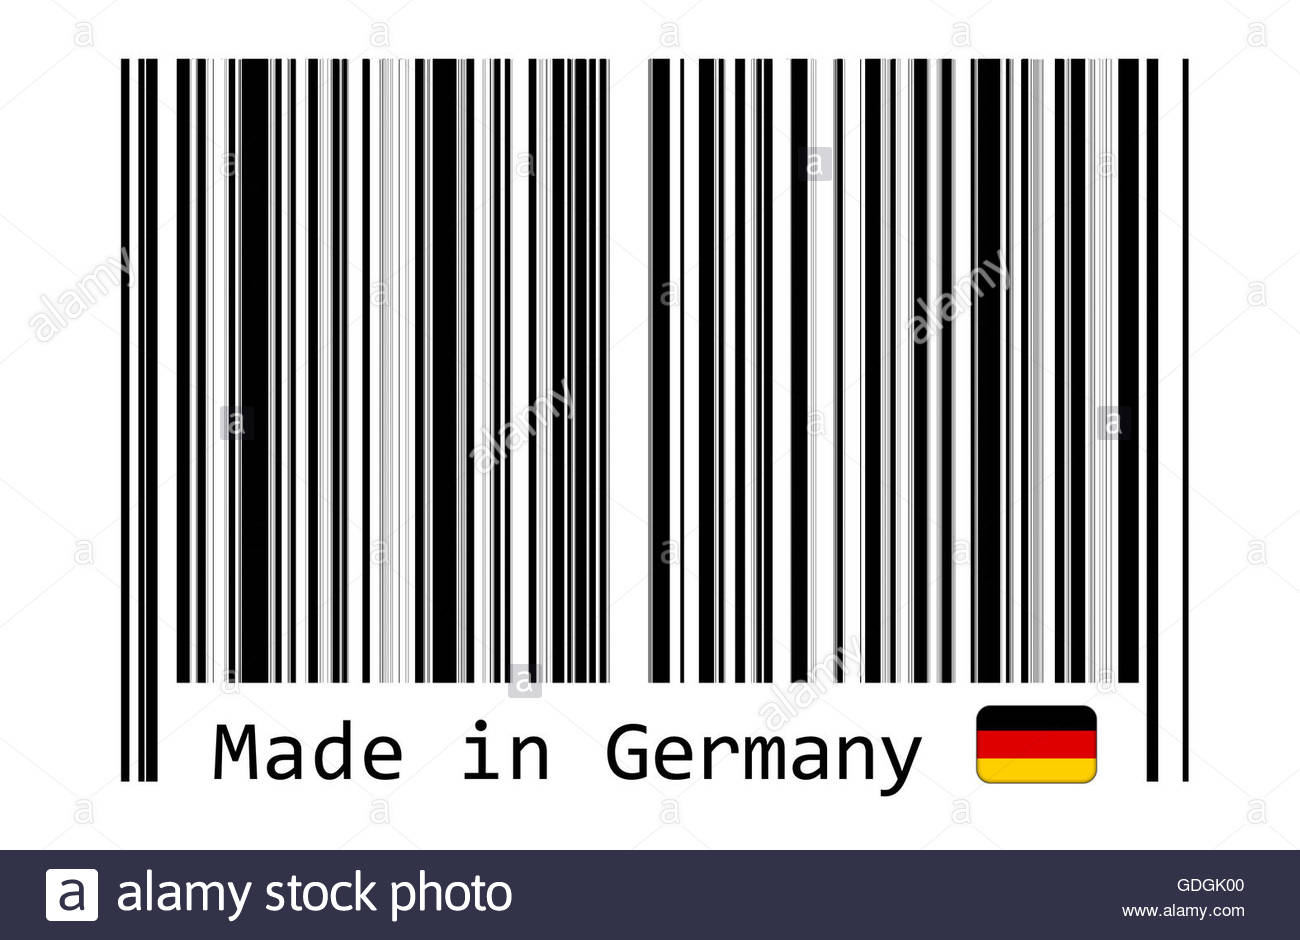 Made in Germany with barcode label - Stock Image